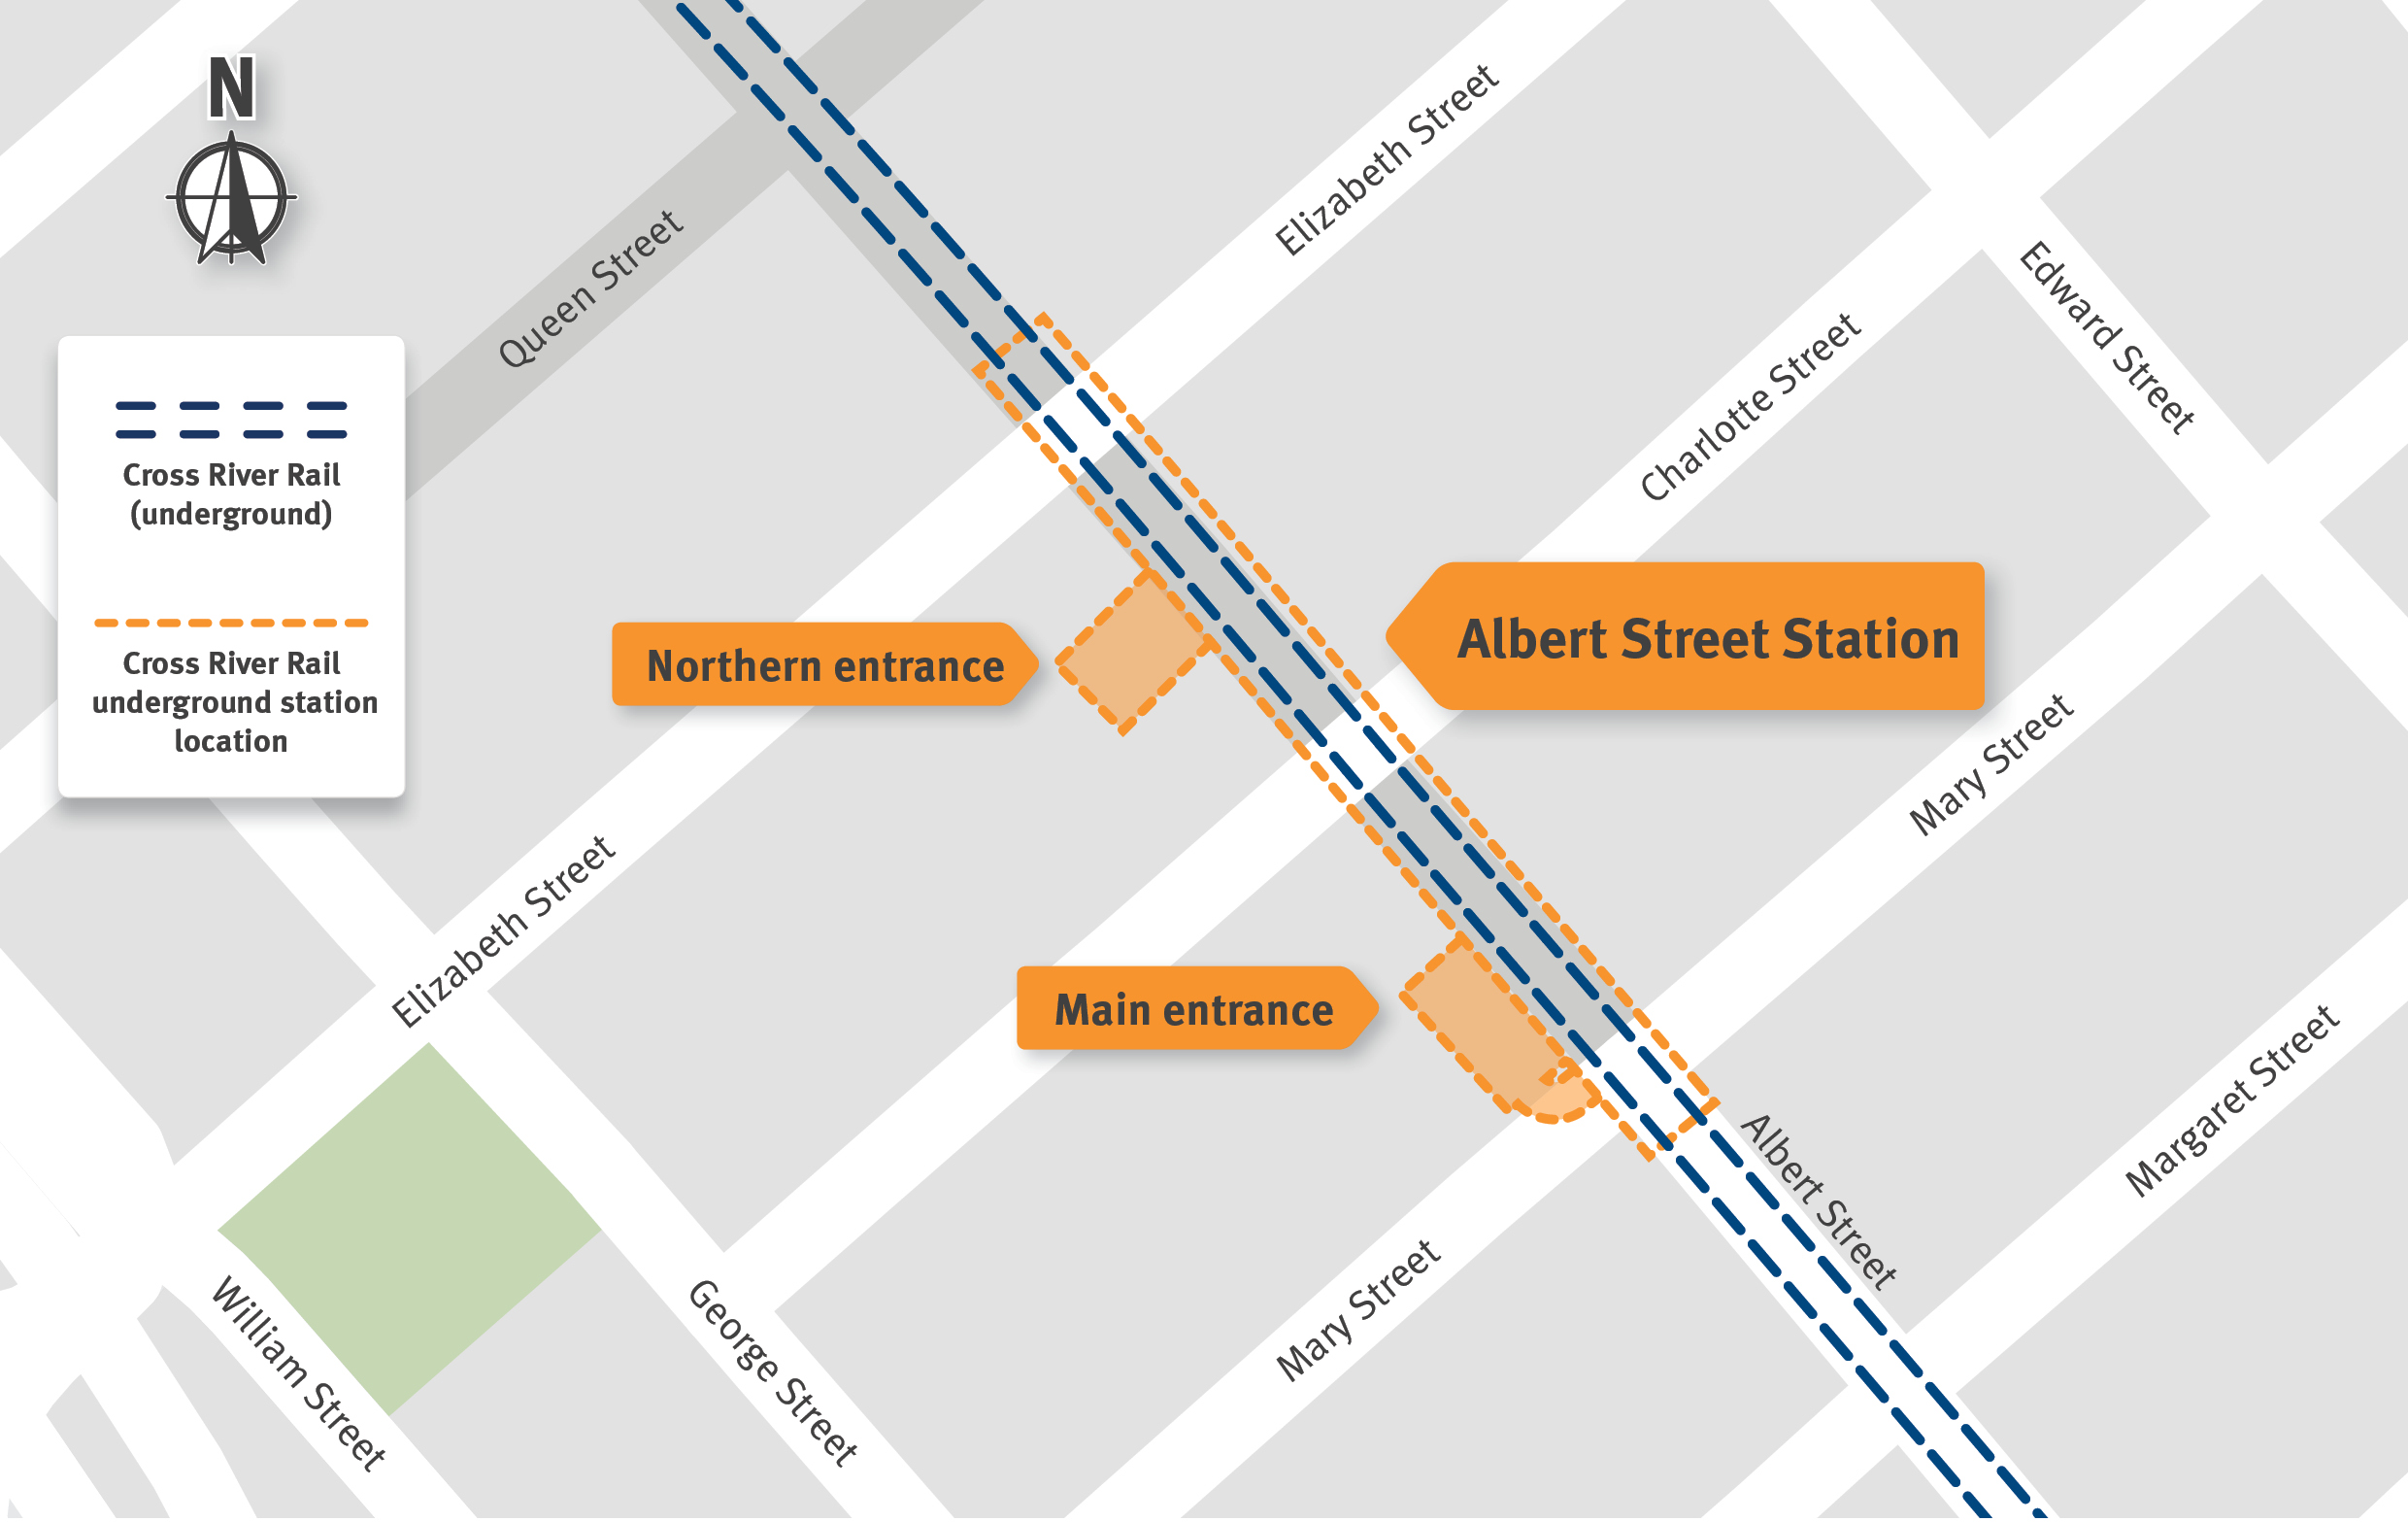 Map indicating the new underground Albert Street Station